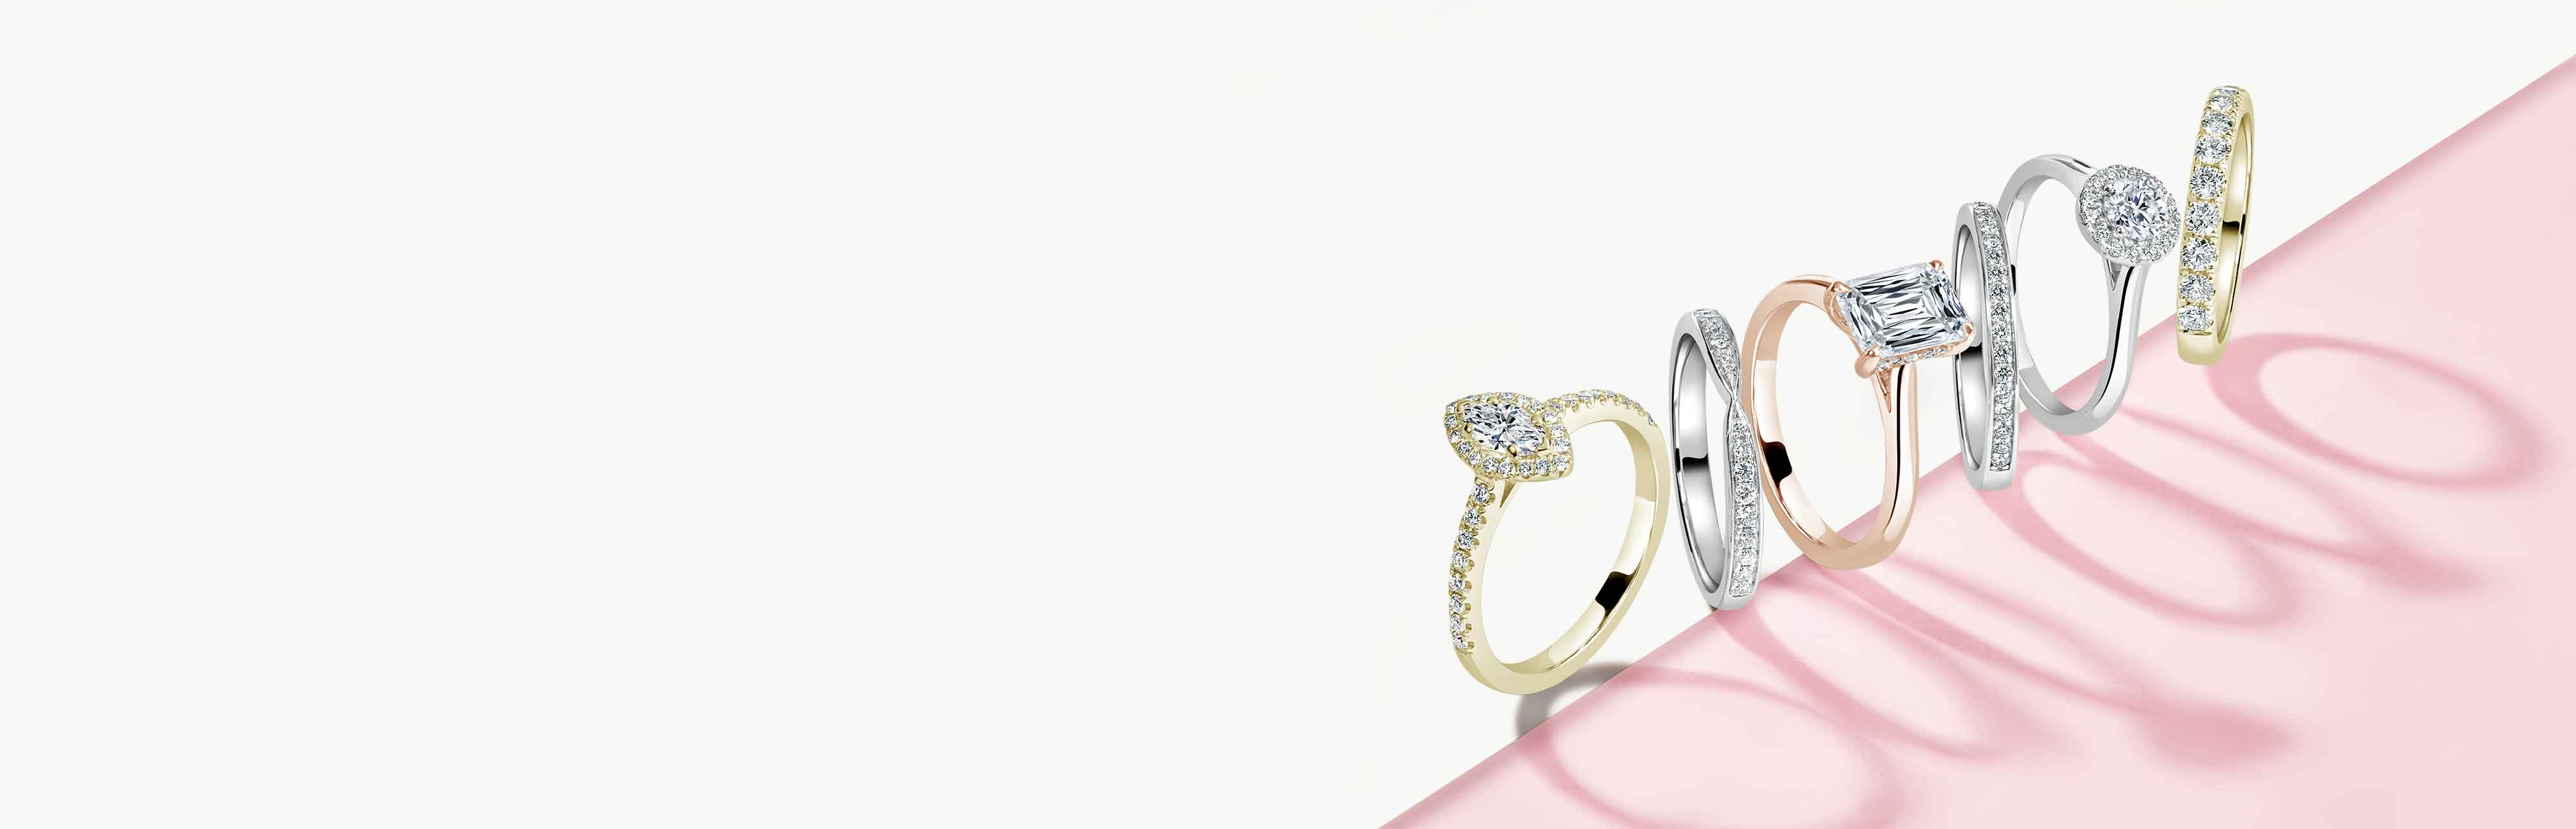 Round Brilliant Solitaire Engagement Rings - Steven Stone